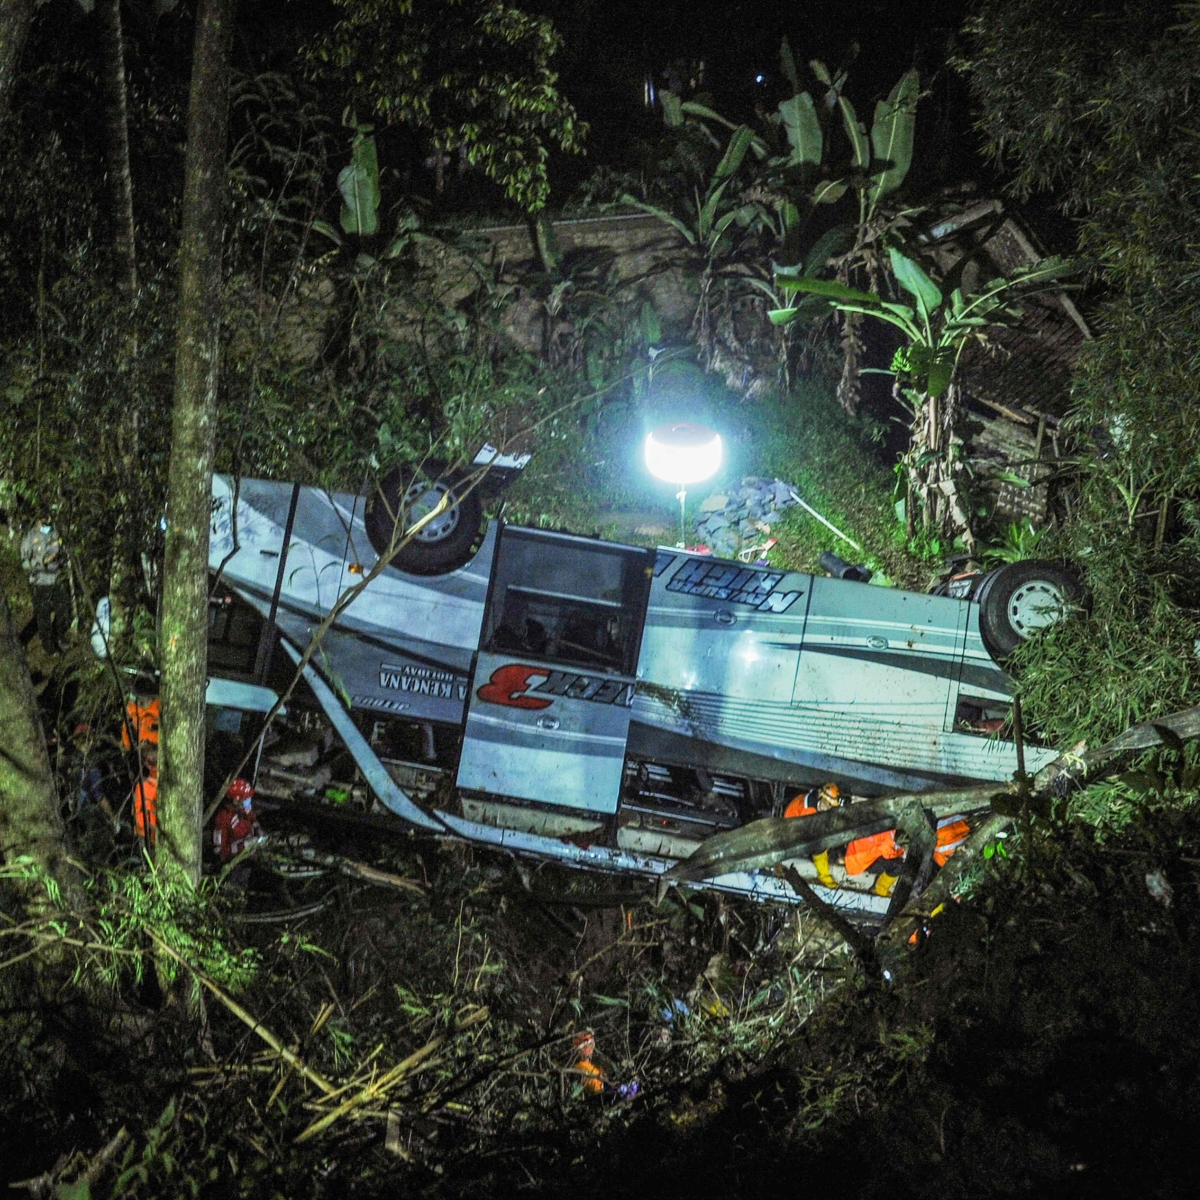 27 killed, 39 injured after Indonesia bus carrying school children plunges into a ravine